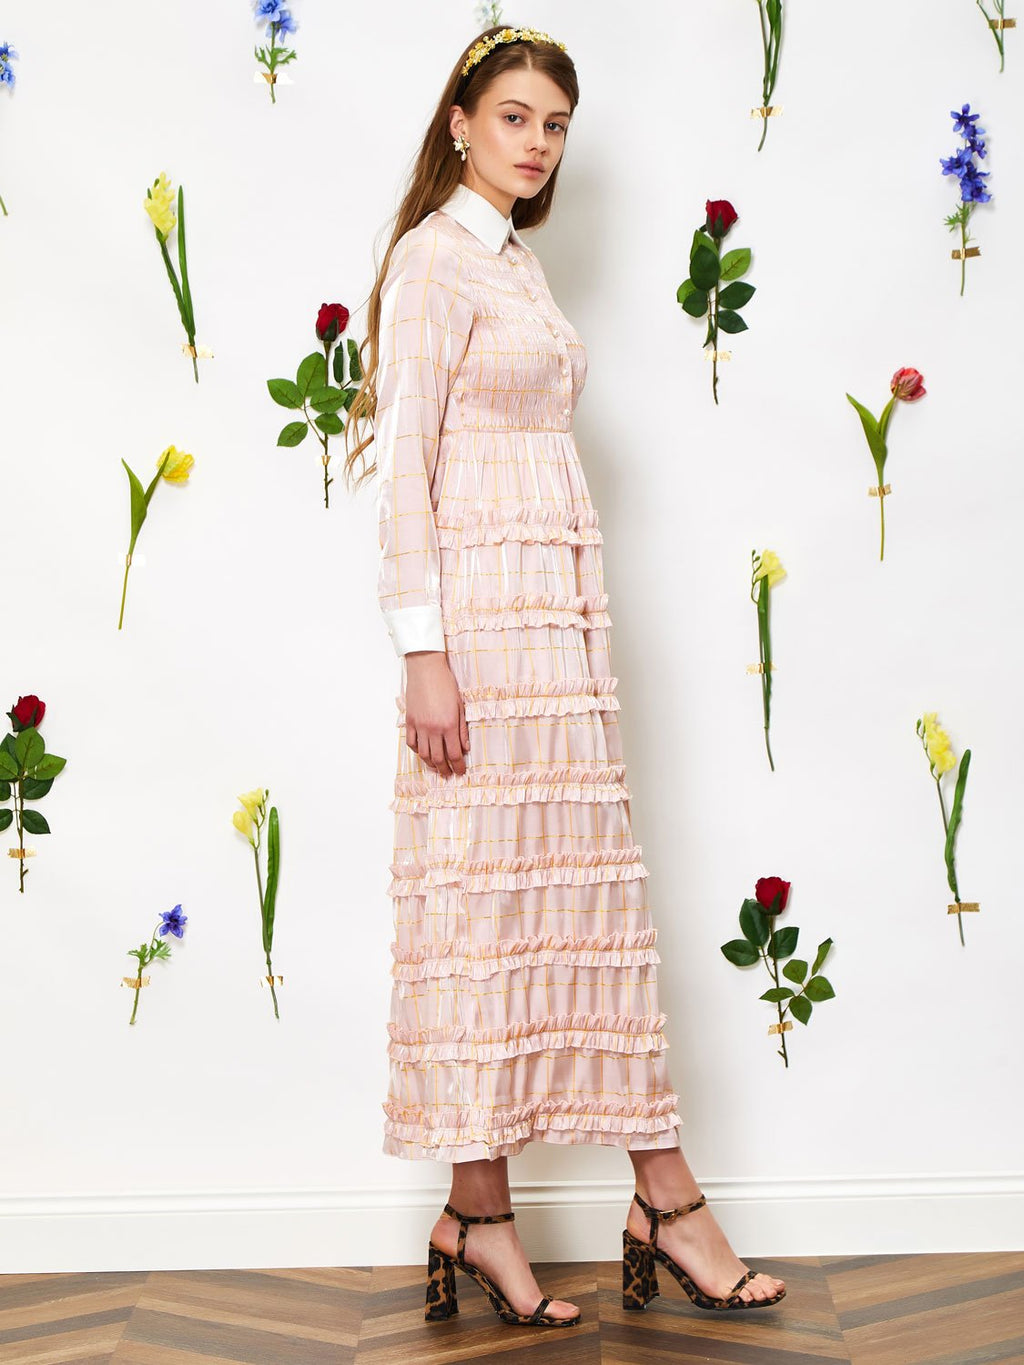 Cheek To Cheek ruffle dress - rose quartz